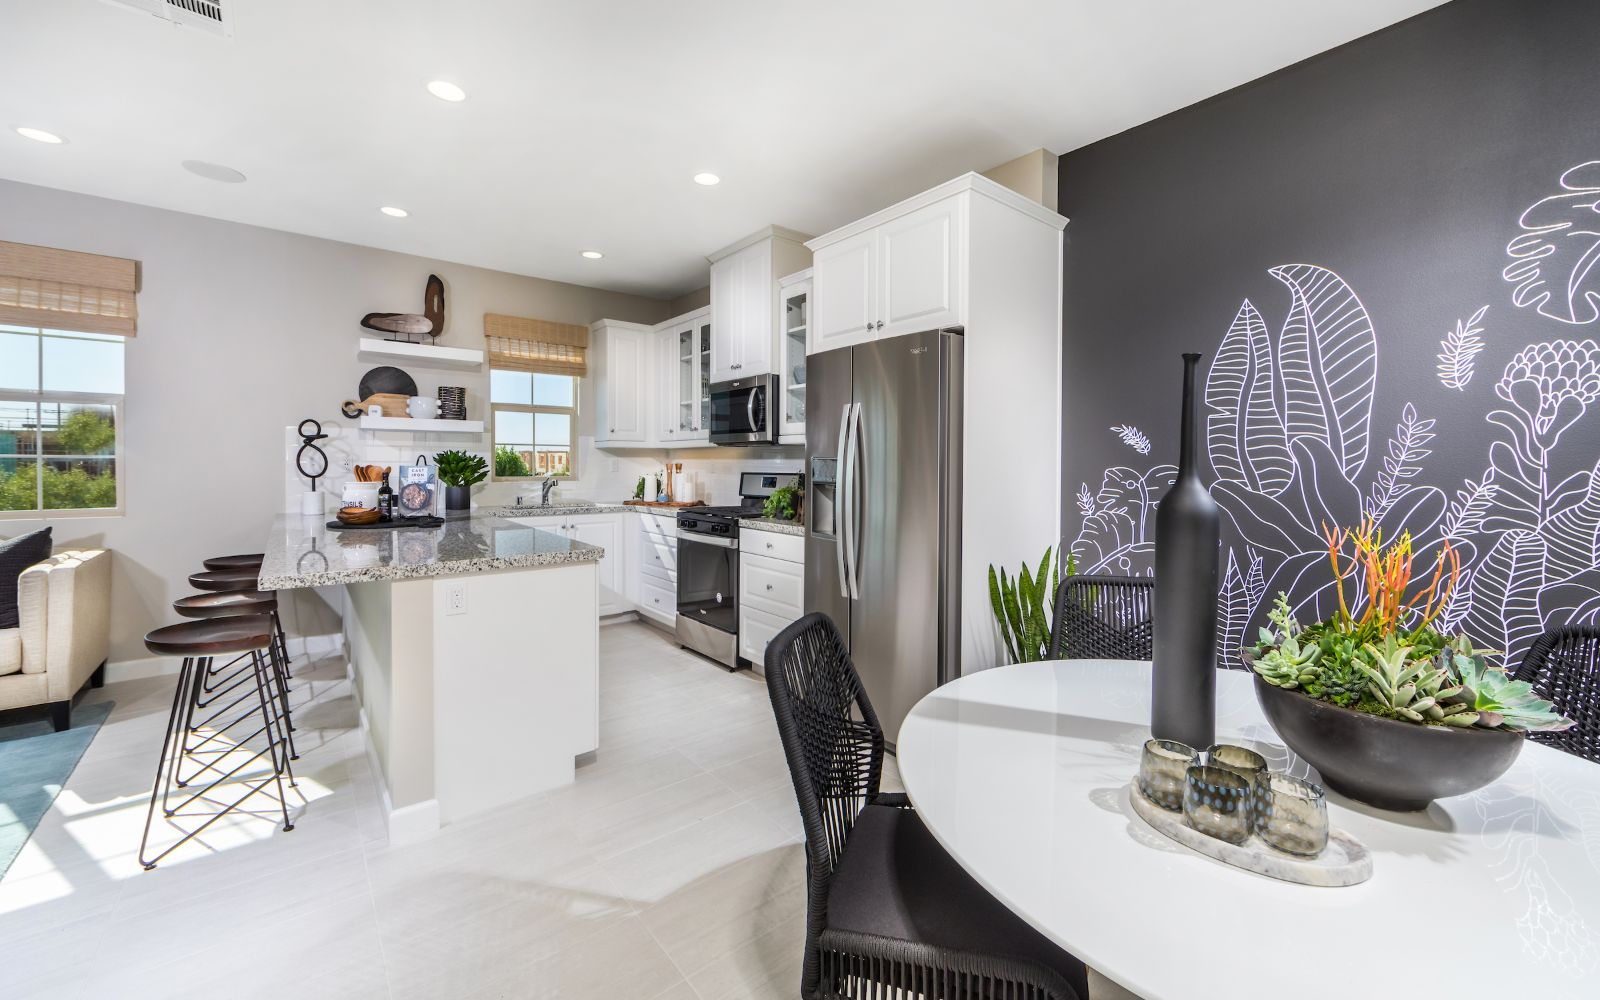 Gardens Plan 1 Kitchen and Dining| Lantana @Beach in Stanton, CA | Brookfield Residential